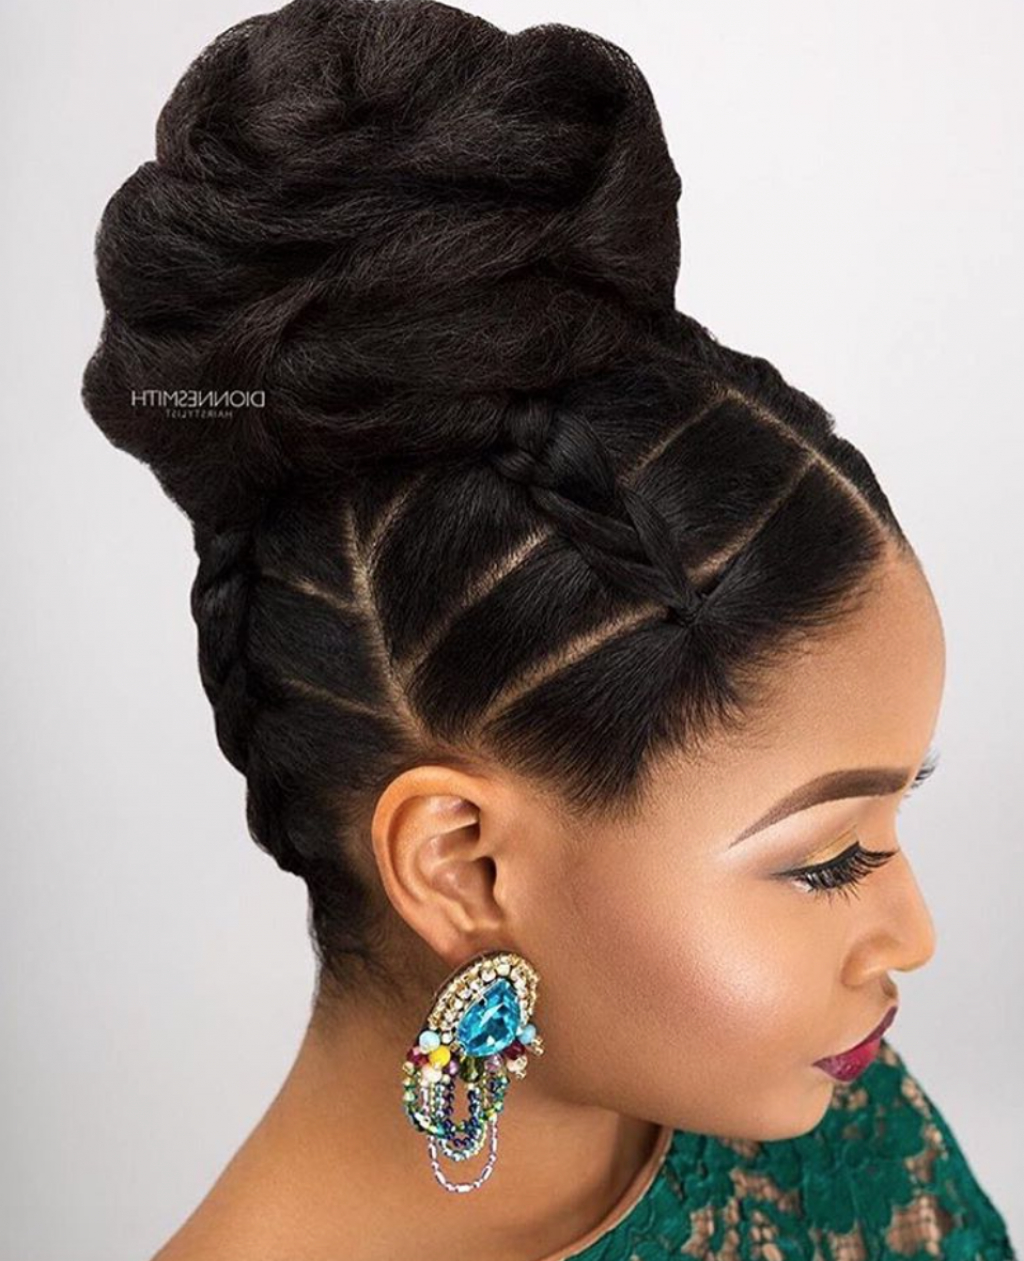 Well Liked Natural Looking Braided Hairstyles For Brides Within Wedding Hairstyles For Black Women, African American Wedding Haircuts (Gallery 15 of 20)